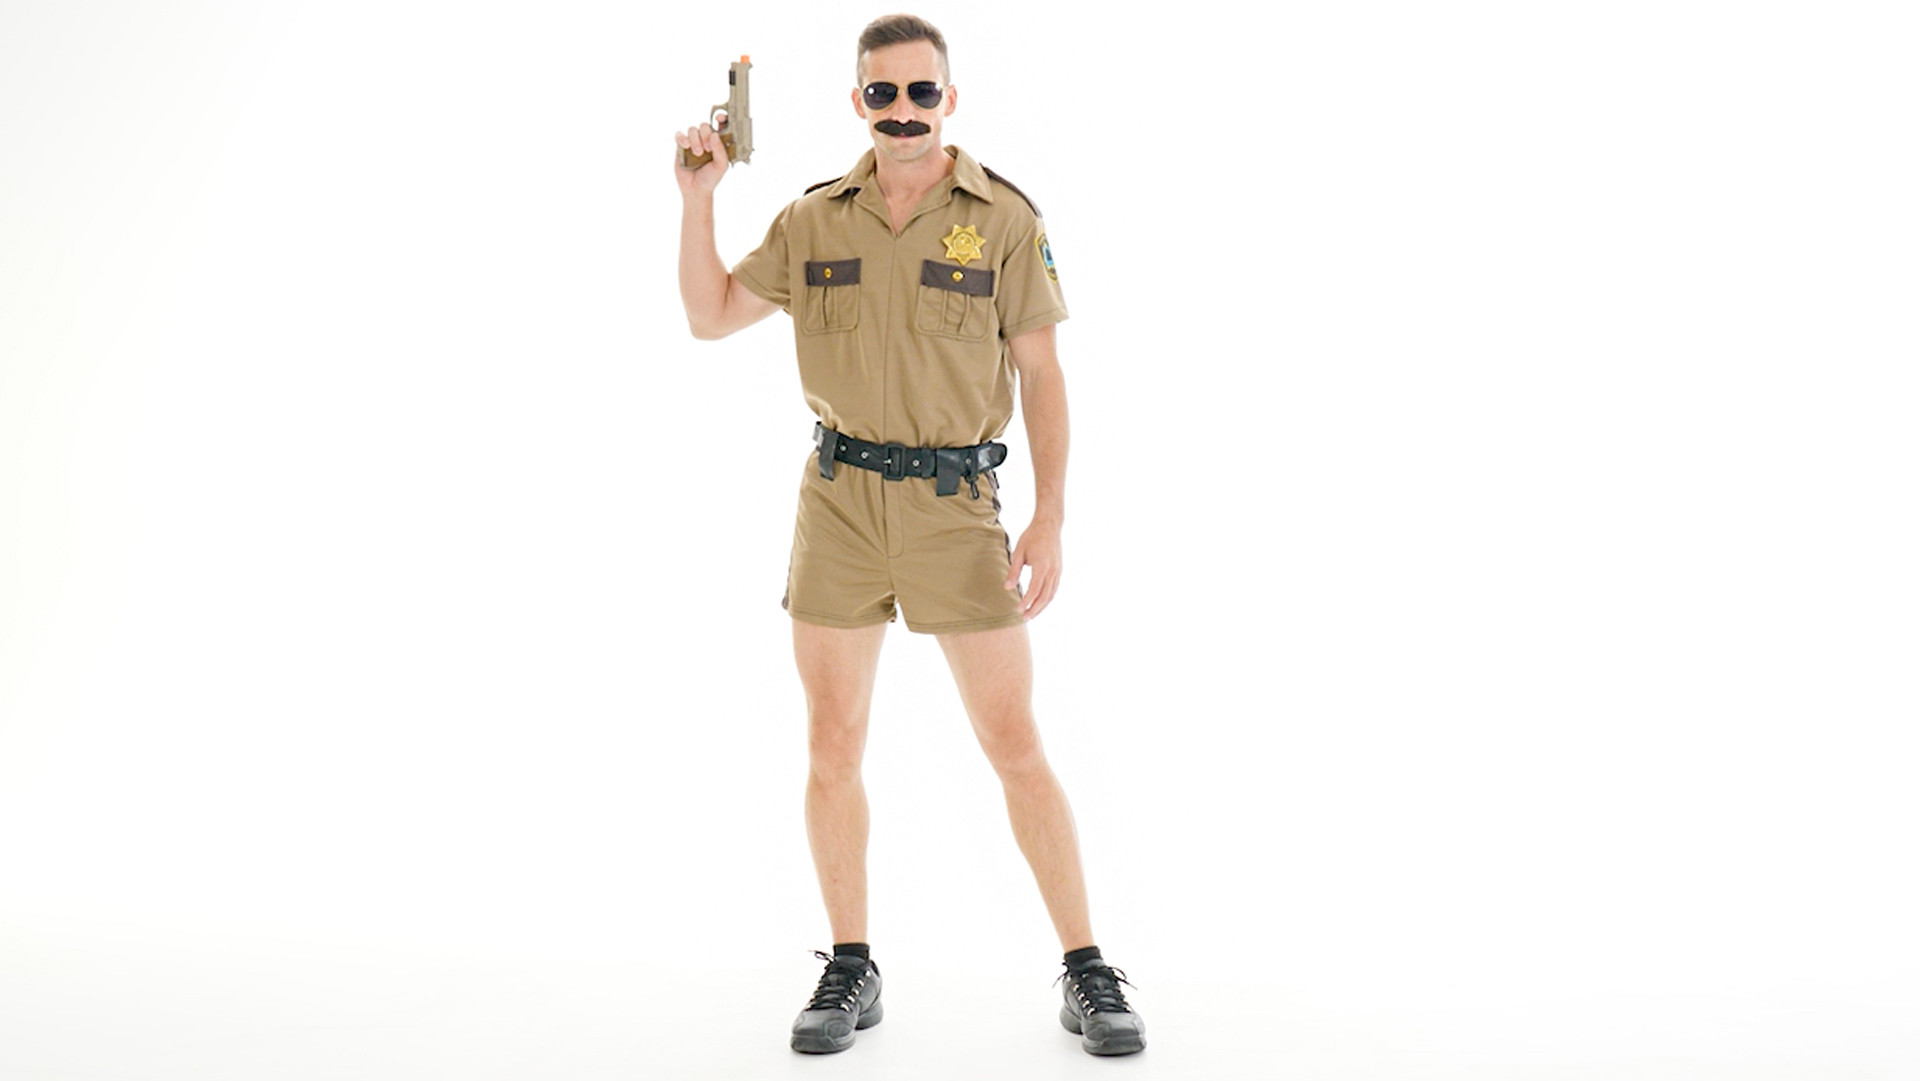 Lt. Dangle Costume